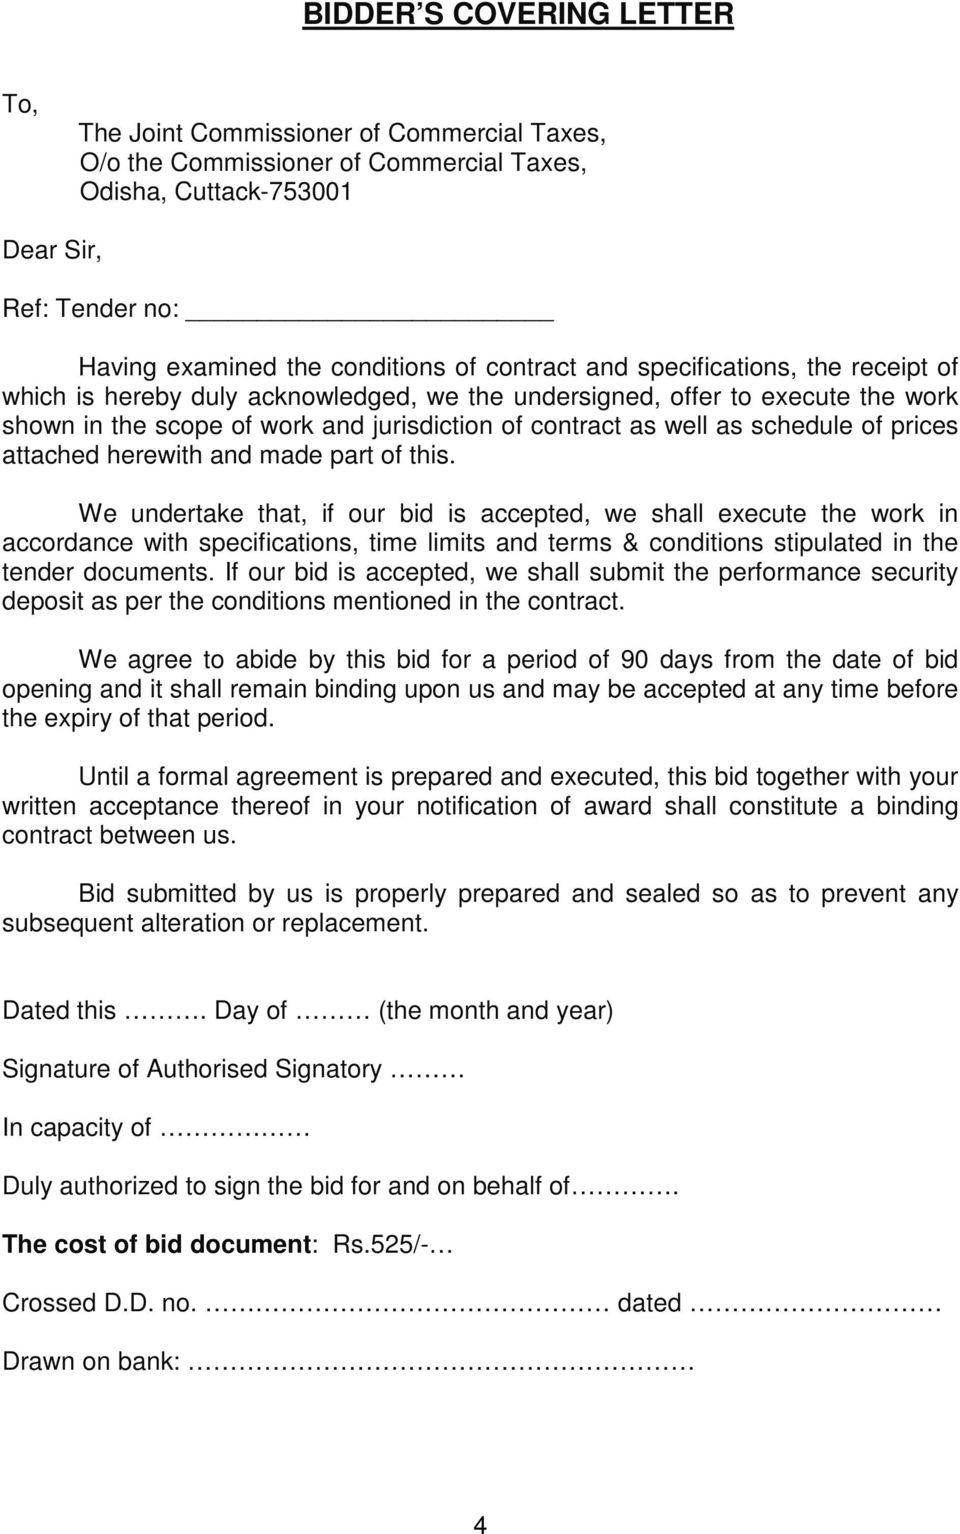 TENDER DOCUMENT FOR SECURITY SERVICE PROVIDER - PDF